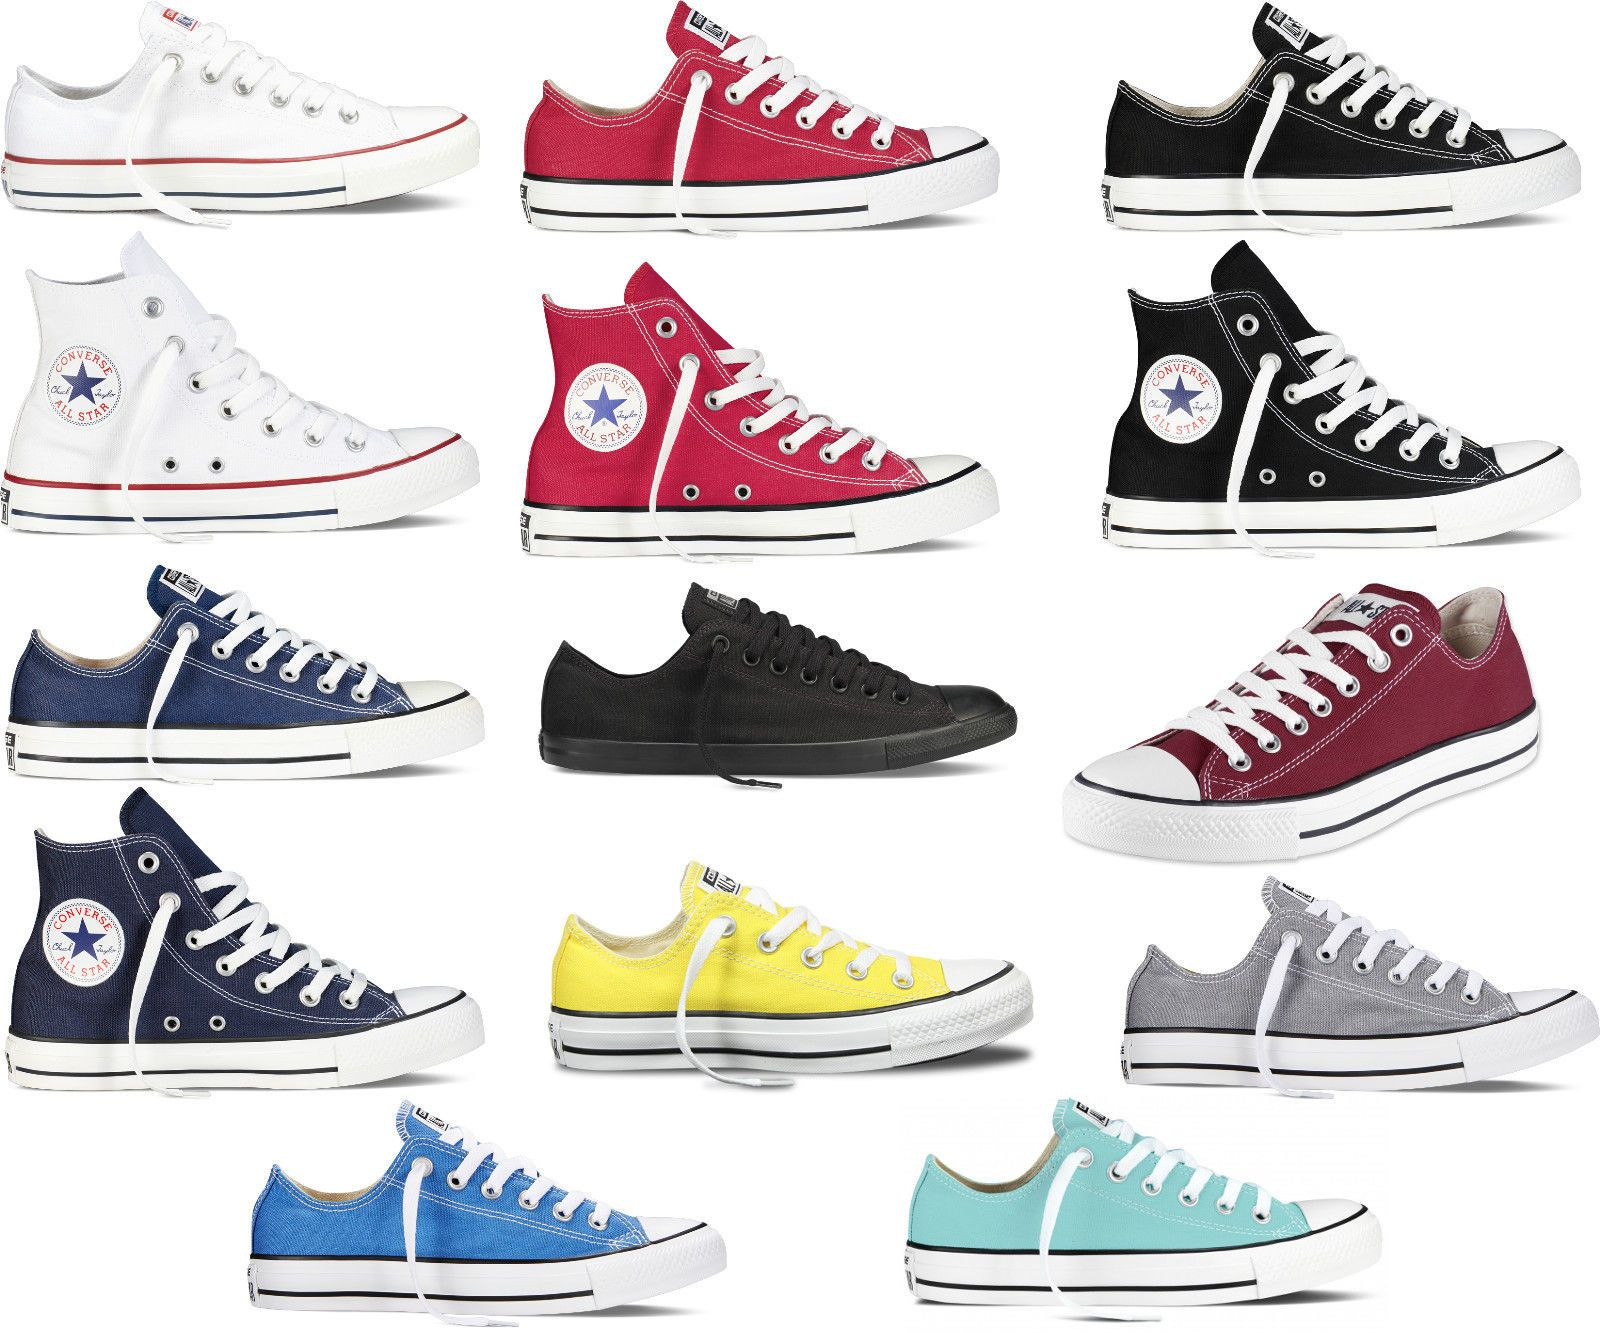 sneakers converse uomo basse